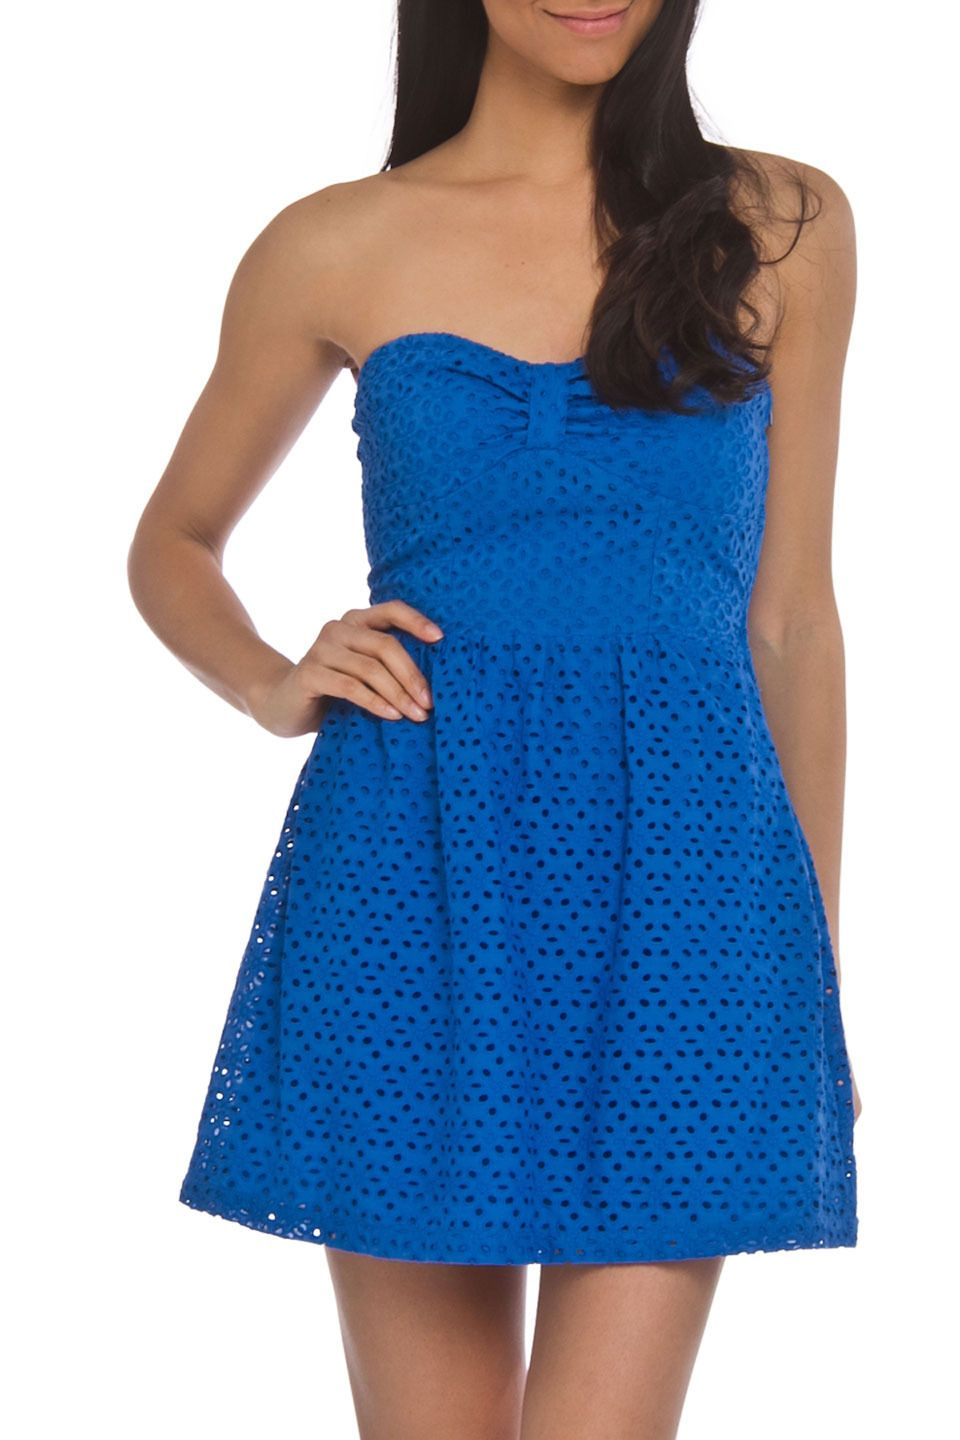 Freckels maureen dress in french blue beyond the rack to